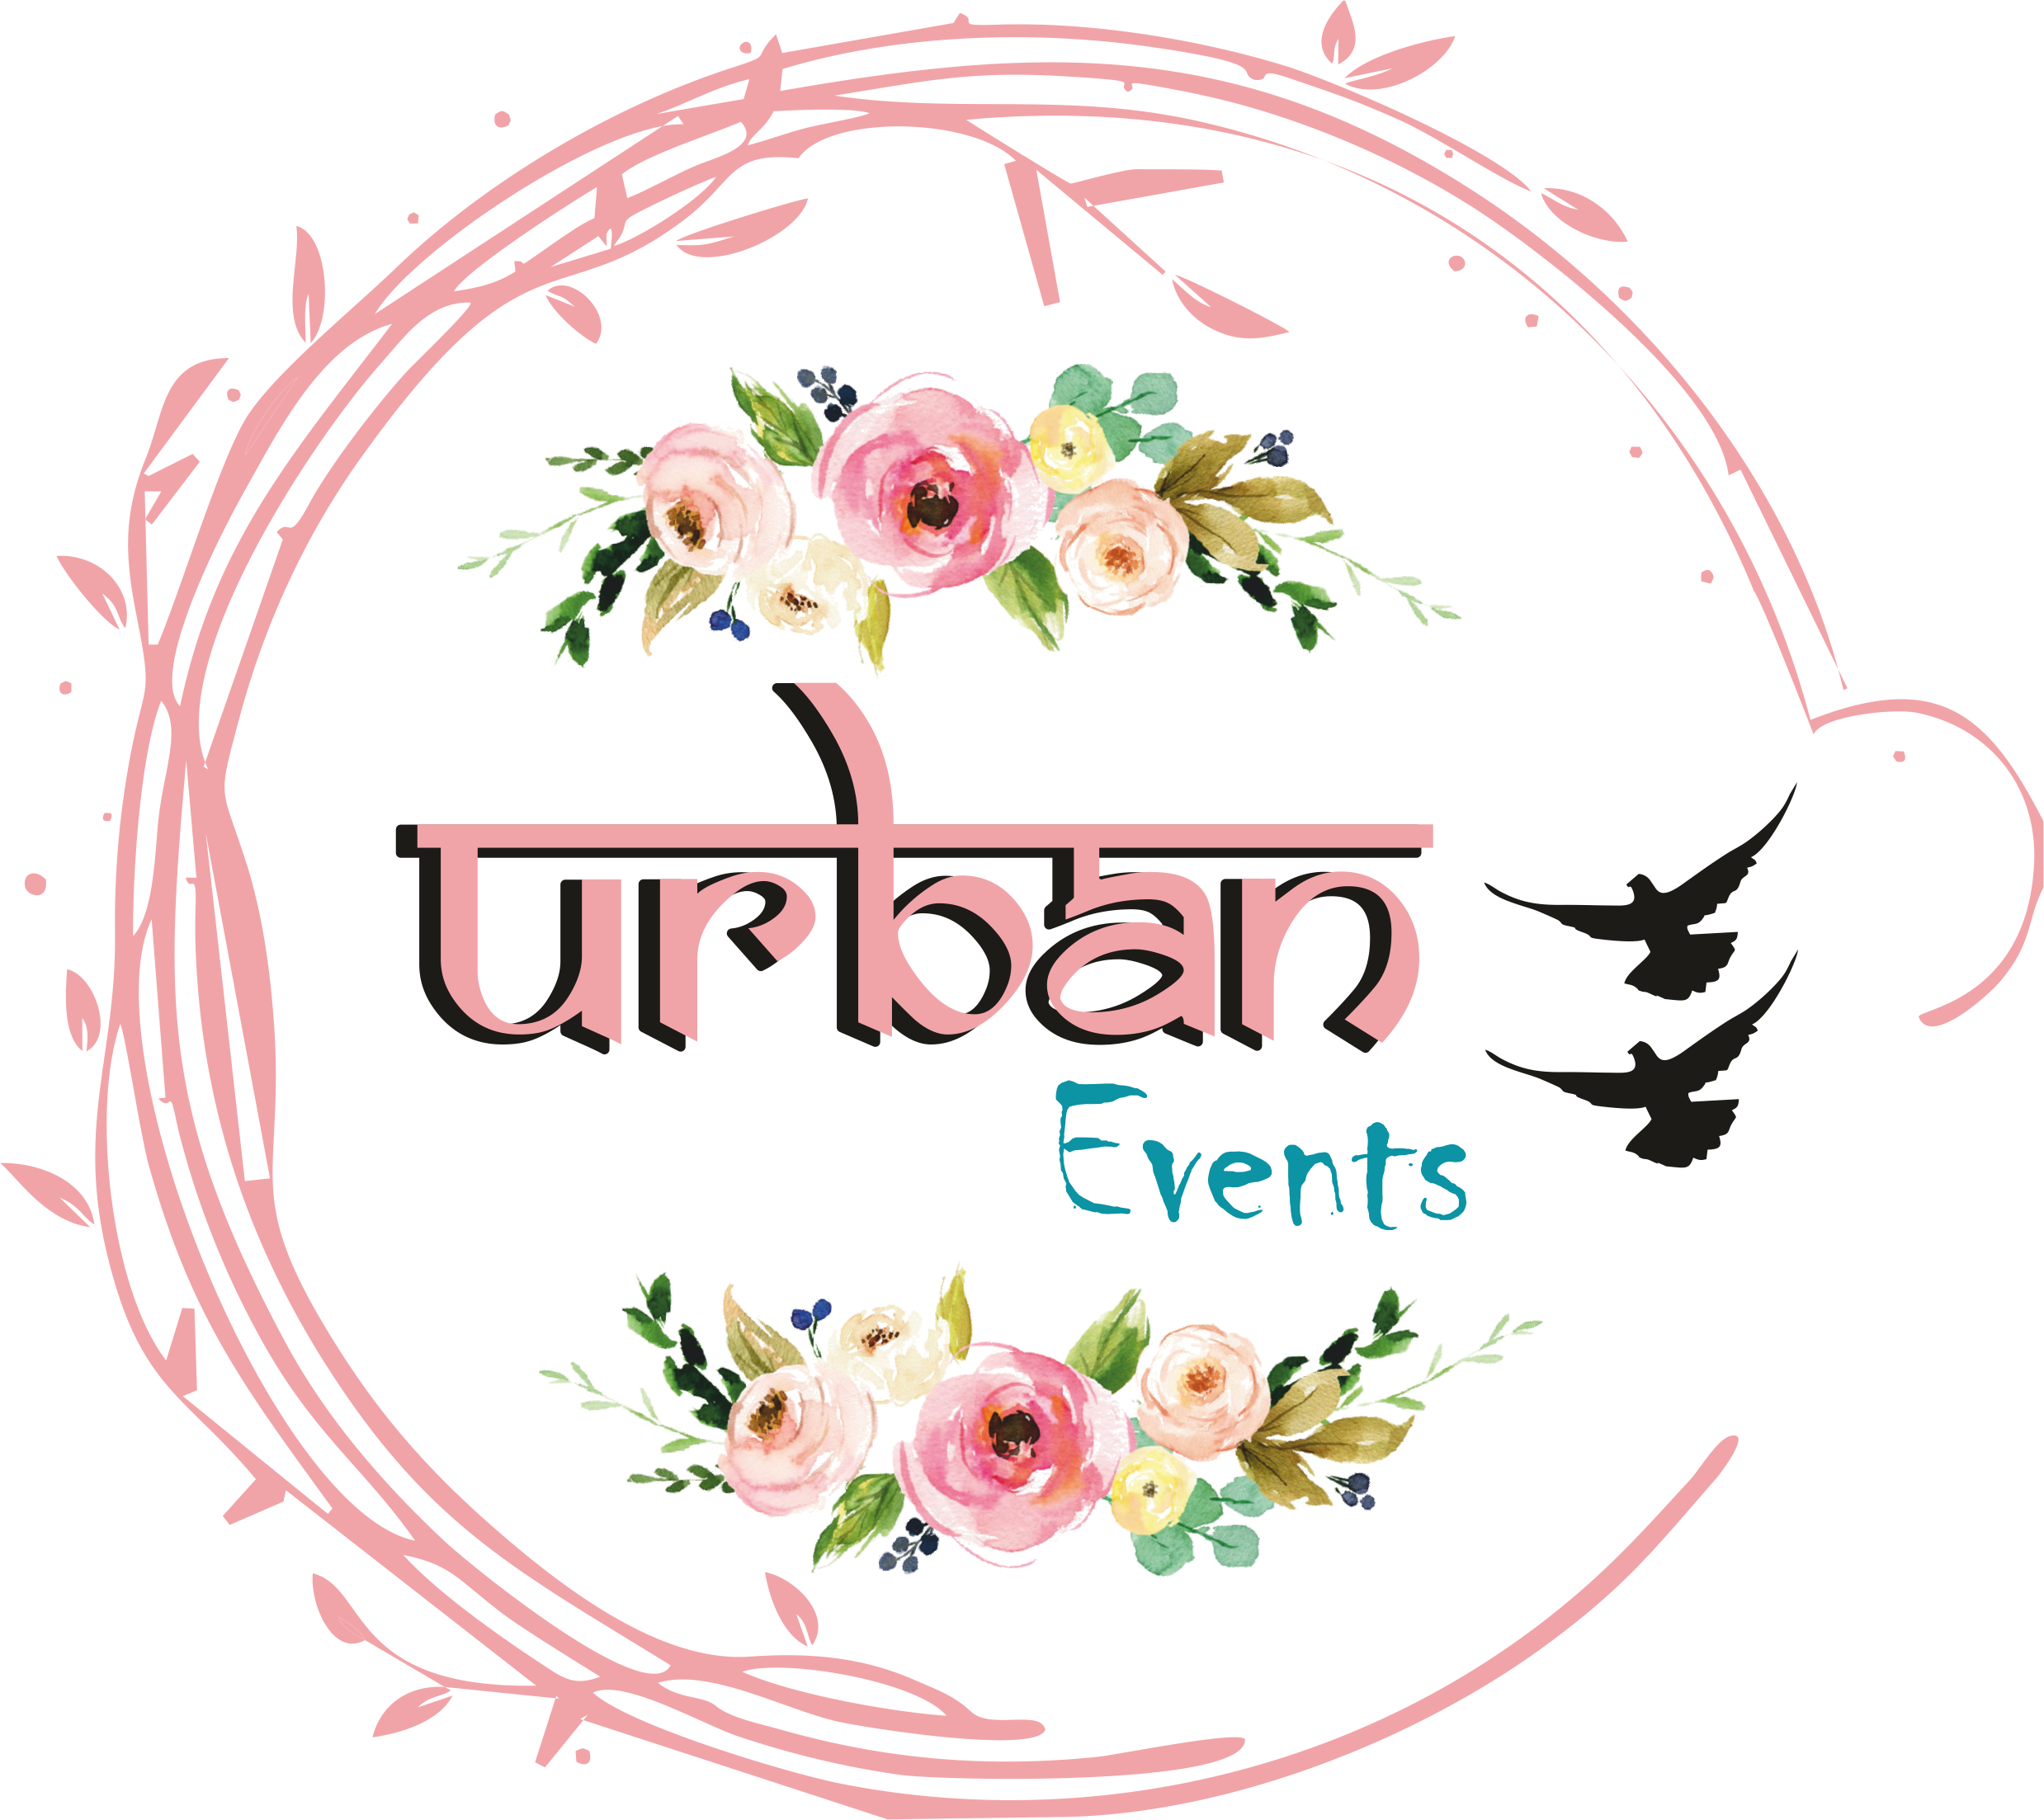 Urban Events wedding planners in pune, wedding decoraters in pune, destination wedding Pune, wedding planners in pune, wedding decoraters in pune, flower decoration in pune, destination wedding planners in pune, destination wedding decor in Pune, destination wedding decor in Pune, Haldi Decor In Pune, Mehendi Décor in pune , eco friendly wedding décor In Pune, , eco friendly wedding décor In Pune,  mandap  décor in pune, mandap décor in pune,  mandap decorations in pune, wedding venues in pune, wedding designer in pune, wedding decoraters in Kolhapur, wedding planers in Kolhapur, baby shower décor in pune, baby shower planners in pune, varamala in pune, wedding garland in pune, bride and groom entry setup in pune, special entry ideas, birthday planners in pune, wedding decoraters, corporate events planner in pune, corporate events in pune, florist in pune, flower décor, wedding planners in lonavala, artificial flower decoration in pune, house warming décor in pune, marigold décor in pune, dj and sound in pune, sangeet décor, vidhi mandap décor in pune, wedding  decorater in mahabaleshwar, bridal shower décor in pune, bride to be décor  wedding decorater wedding planners wedding planners in Maharashtra, wedding planners in goa, wedding decoraters in goa, destination wedding Goa, wedding planners in goa, wedding decoraters in goa, flower decoration in goa, destination wedding planners in goa, destination wedding decor in Goa, destination wedding decor in Goa, Haldi Decor In Goa, Mehendi Décor in goa , eco friendly wedding décor In Goa, , eco friendly wedding décor In Goa,  mandap  décor in goa, mandap décor in goa,  mandap decorations in goa, wedding venues in goa, wedding designer in goa, wedding decoraters in Kolhapur, wedding planers in Kolhapur, baby shower décor in goa, baby shower planners in goa, varamala in goa, wedding garland in goa, bride and groom entry setup in goa, special entry ideas, birthday planners in goa, wedding decoraters, corporate events planne